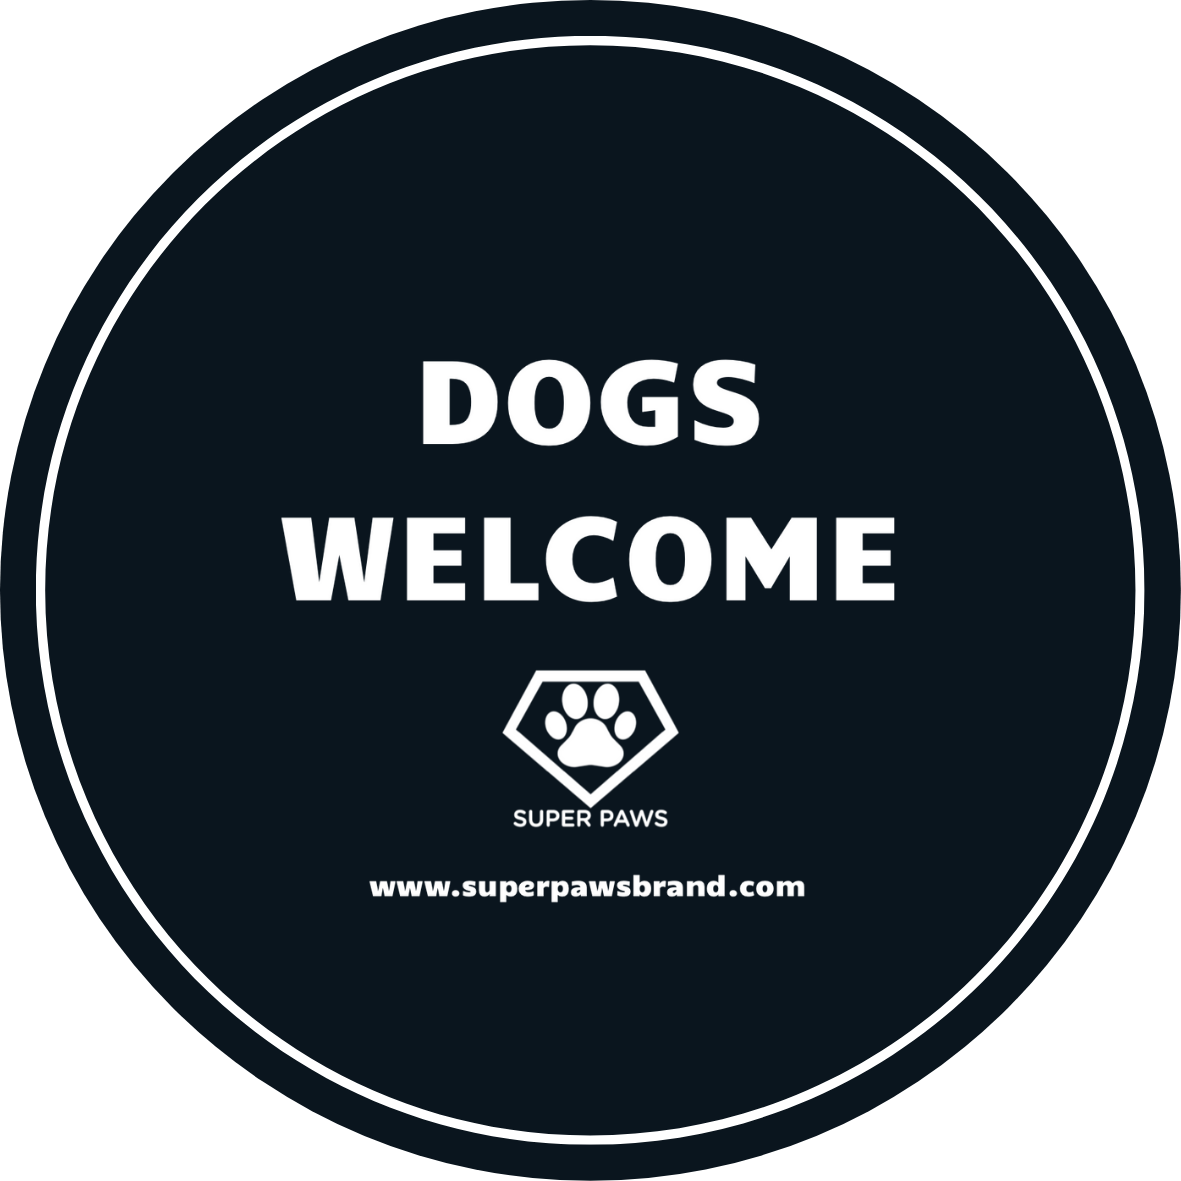 DOGS WELCOME BADGE